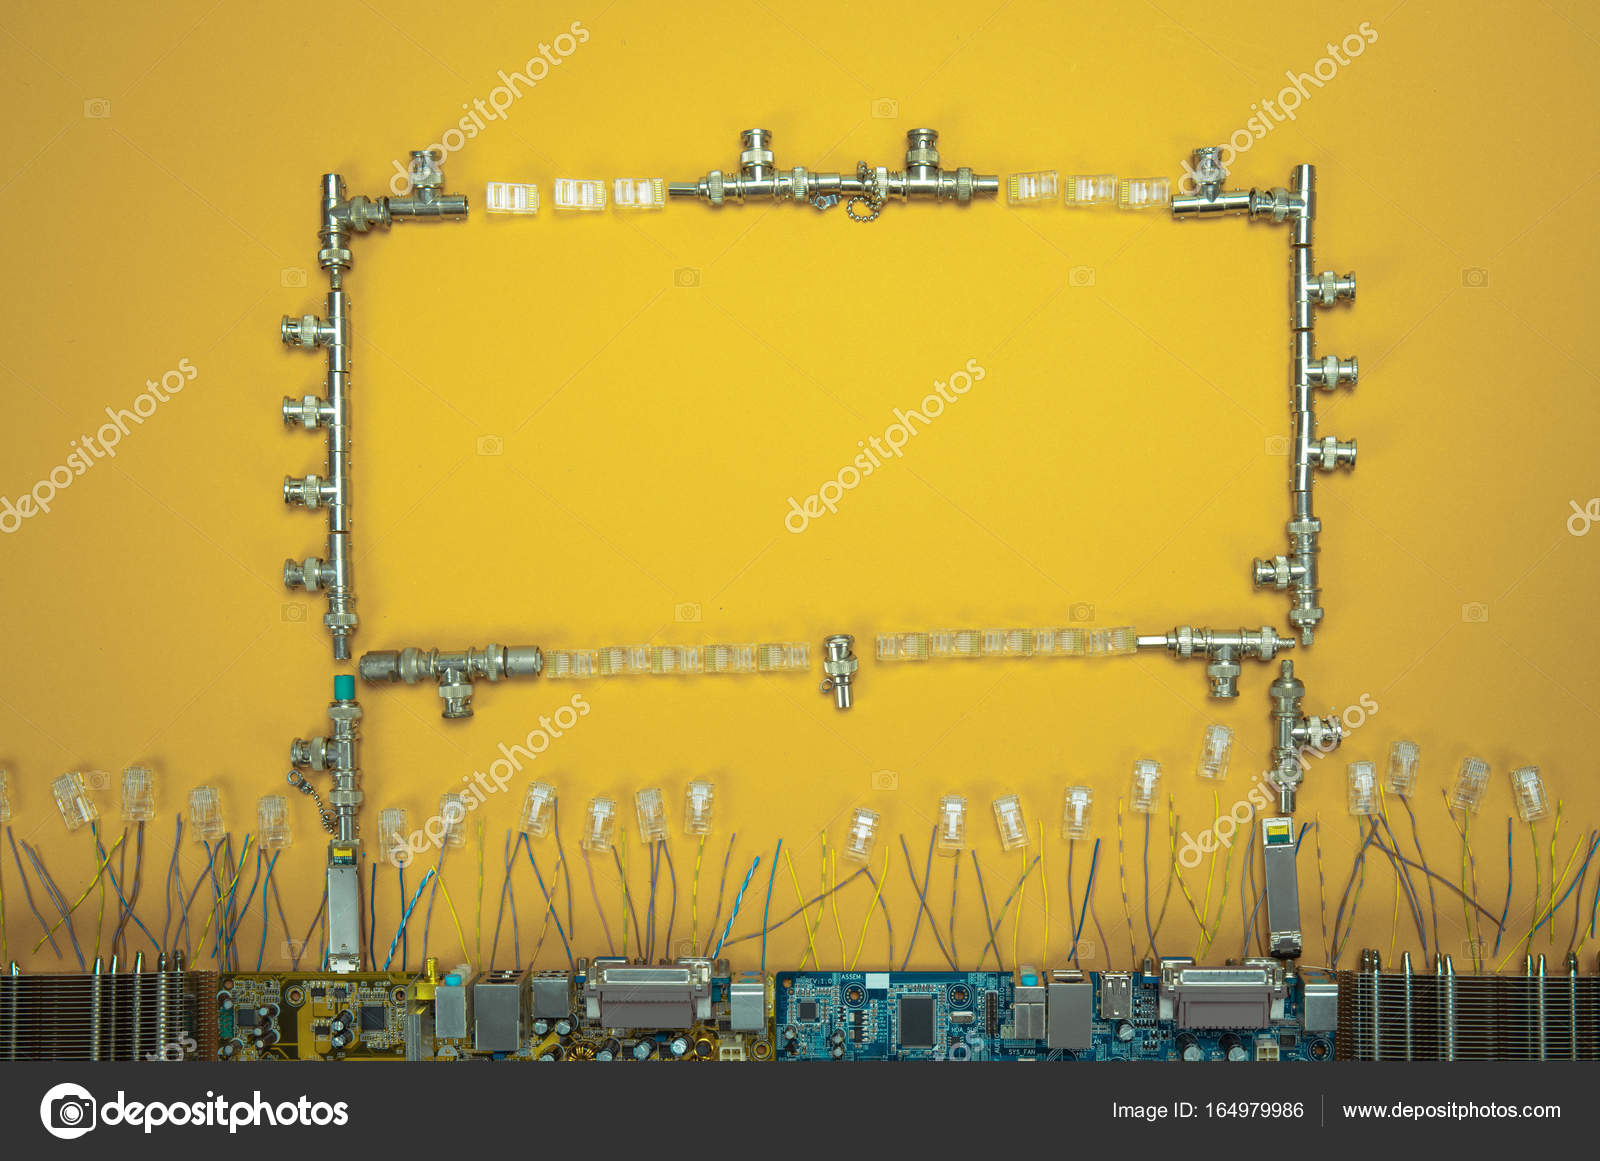 Electronic Circuit Chip Board Background Stock Photo Sector 2010 Construction